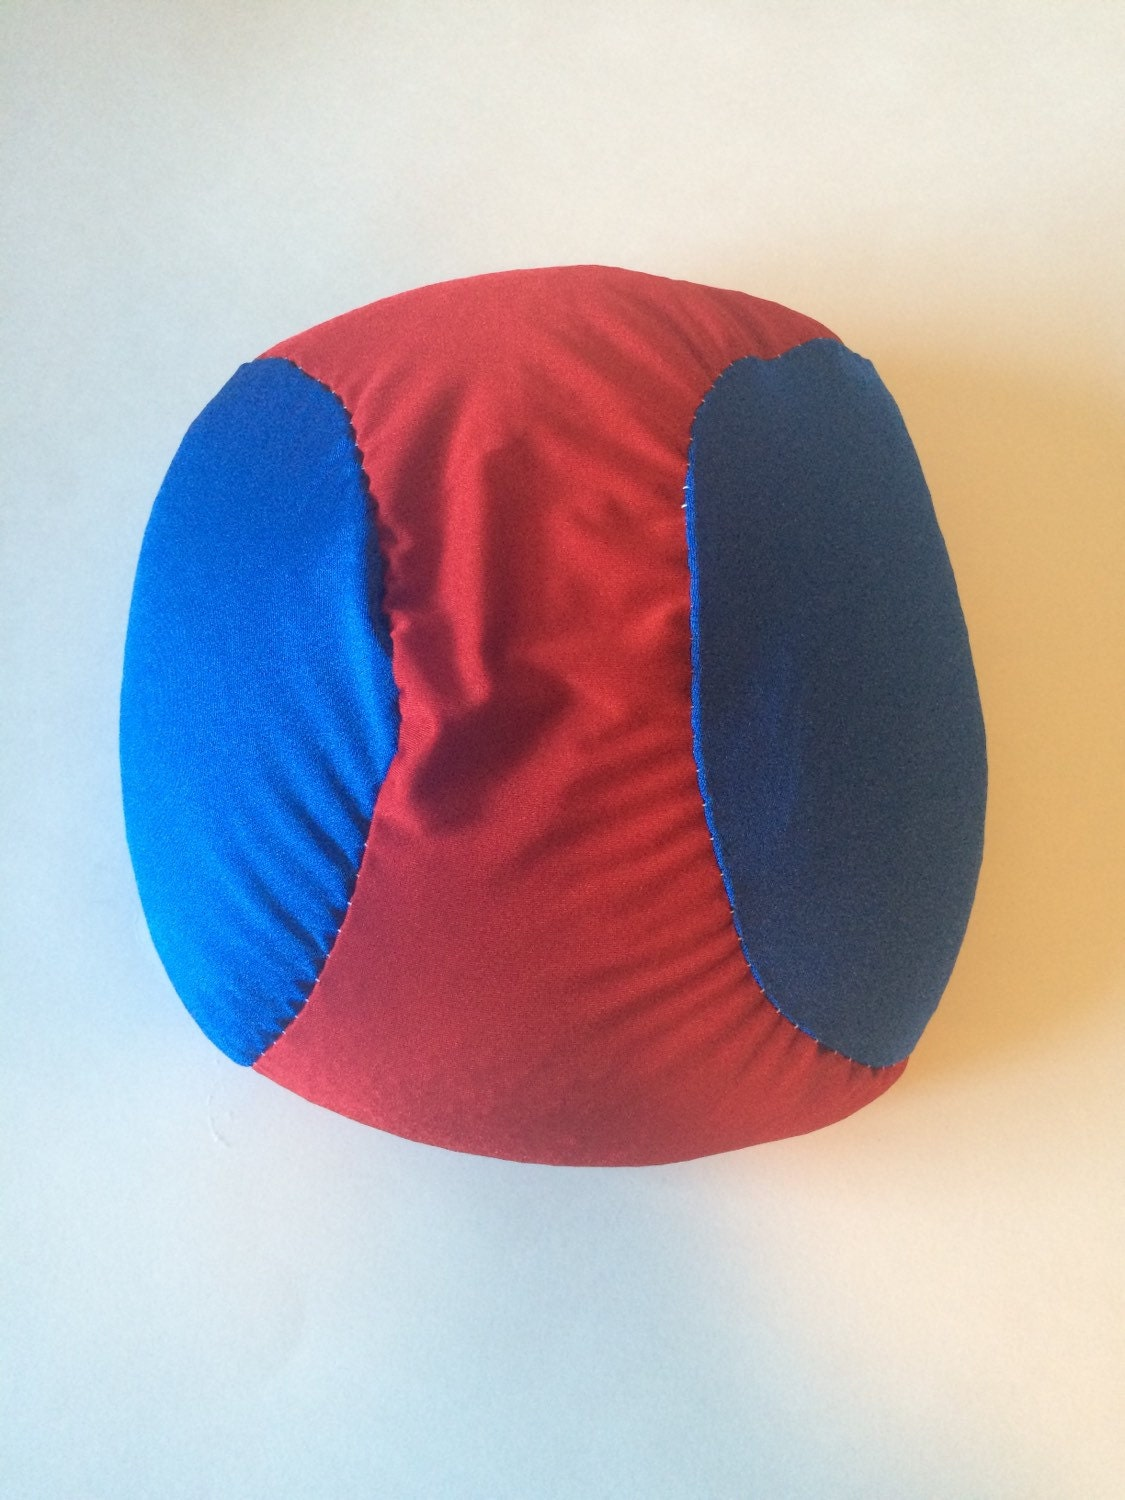 Large Squishy Ball : Weighted Fidget Squishy ball, large, sensory toy - lycra - poly pellets, 3 lbs